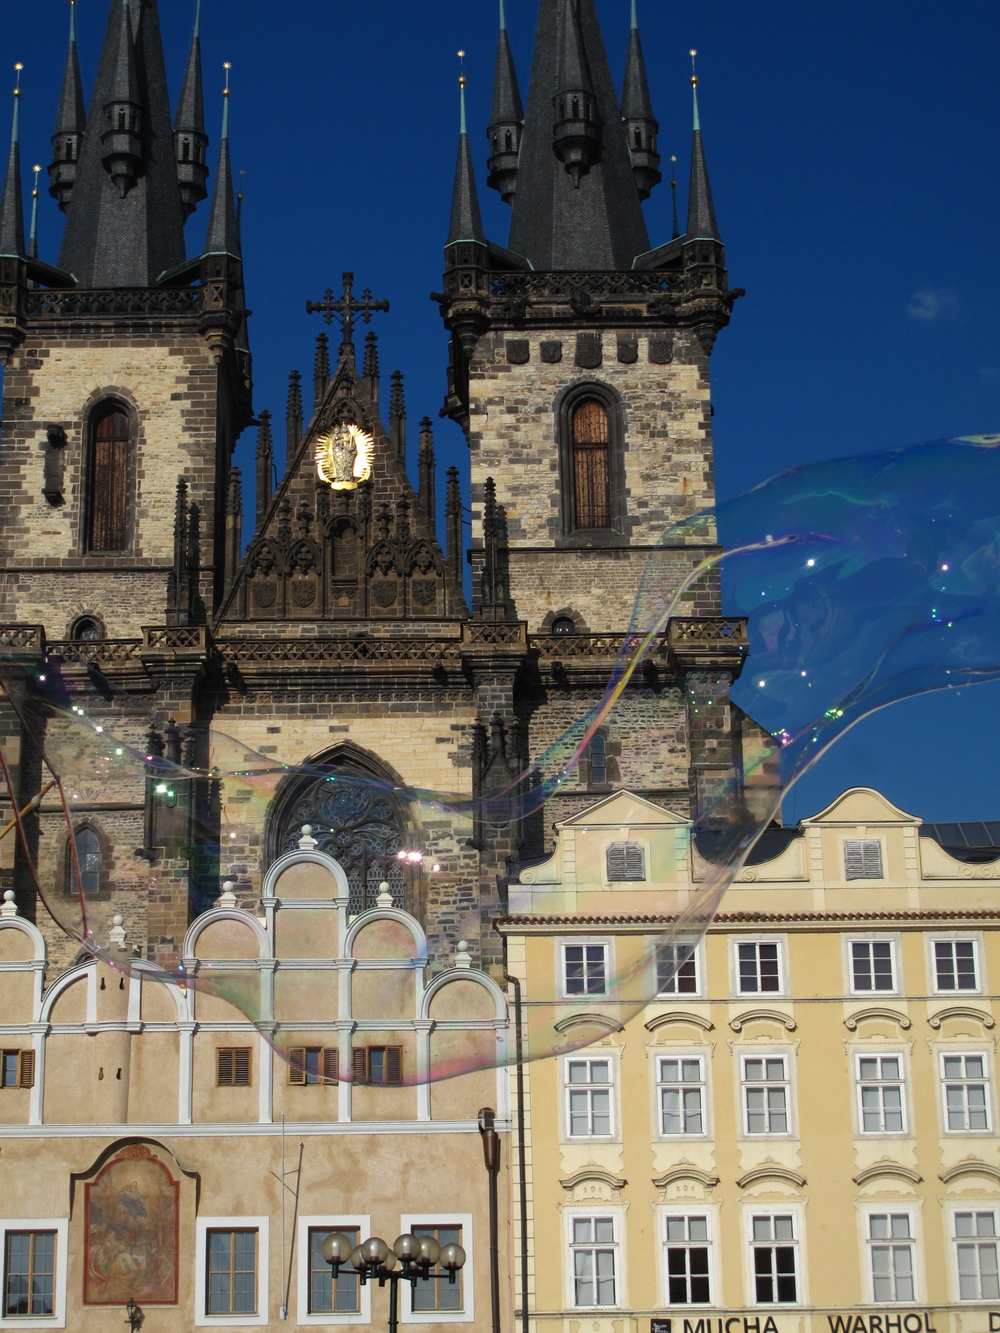 Blowing giant bubbles in the Old Town Square of Prague.